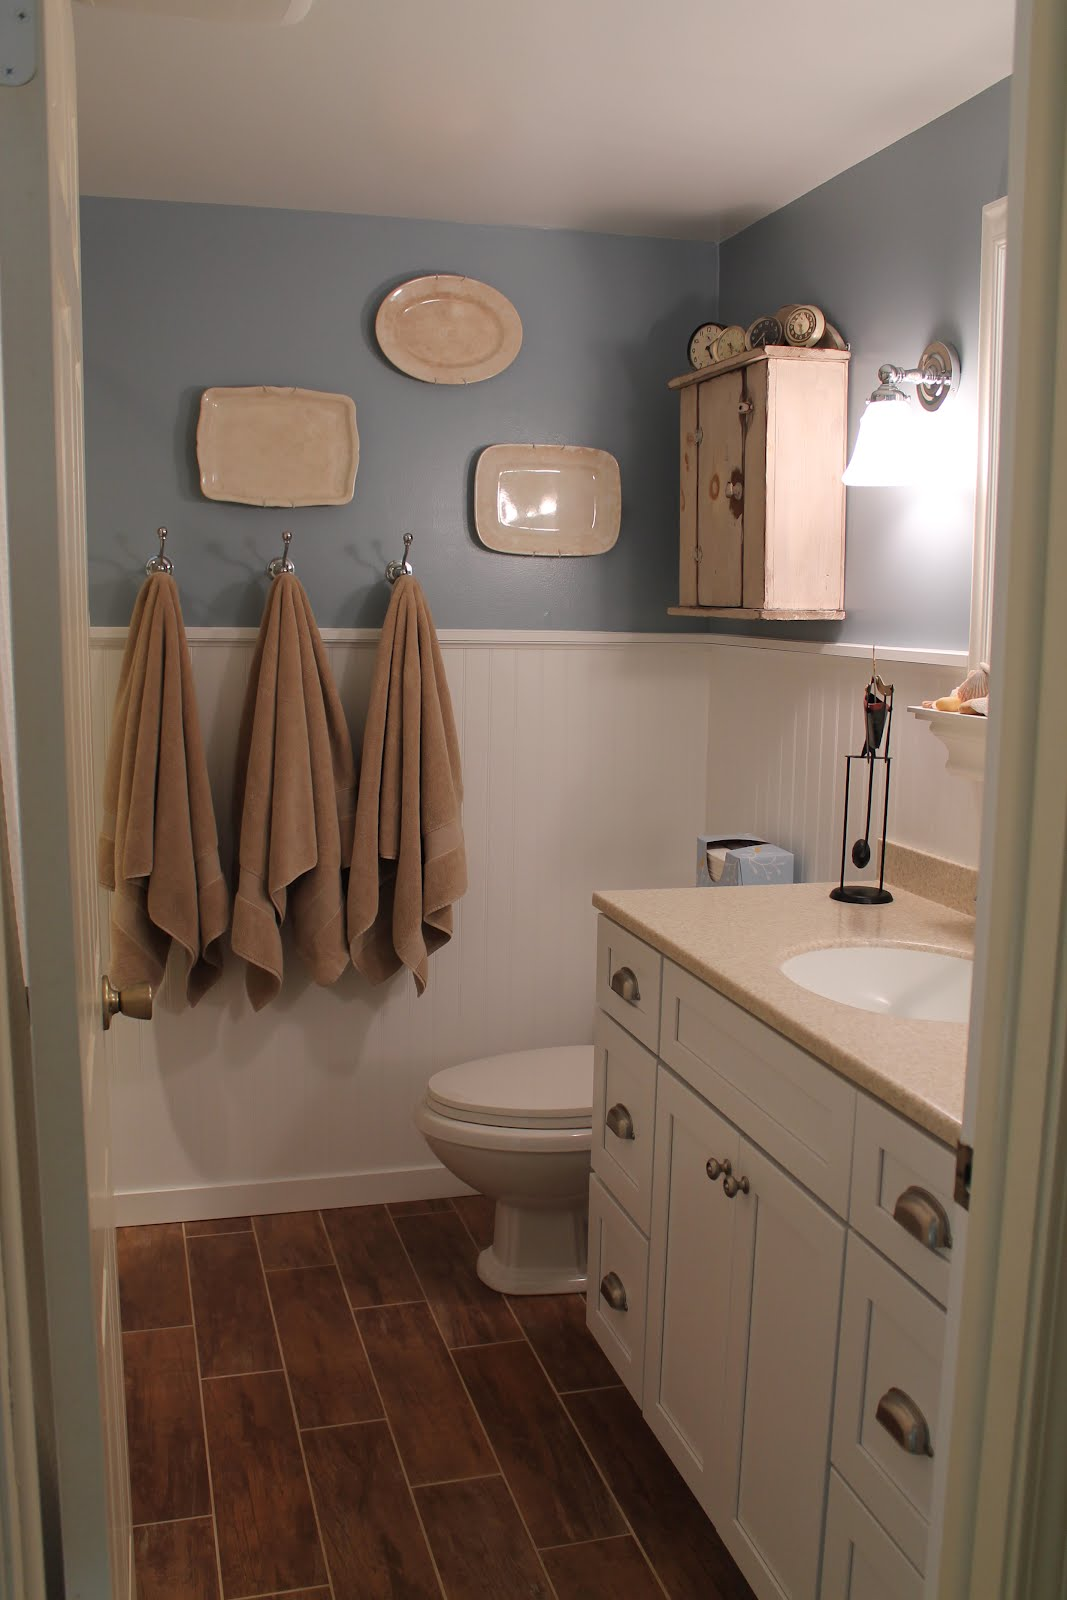 Wood Looking Tile Bathroom Remodelaholic Bathroom Renovation With Wood Grain Tile And More